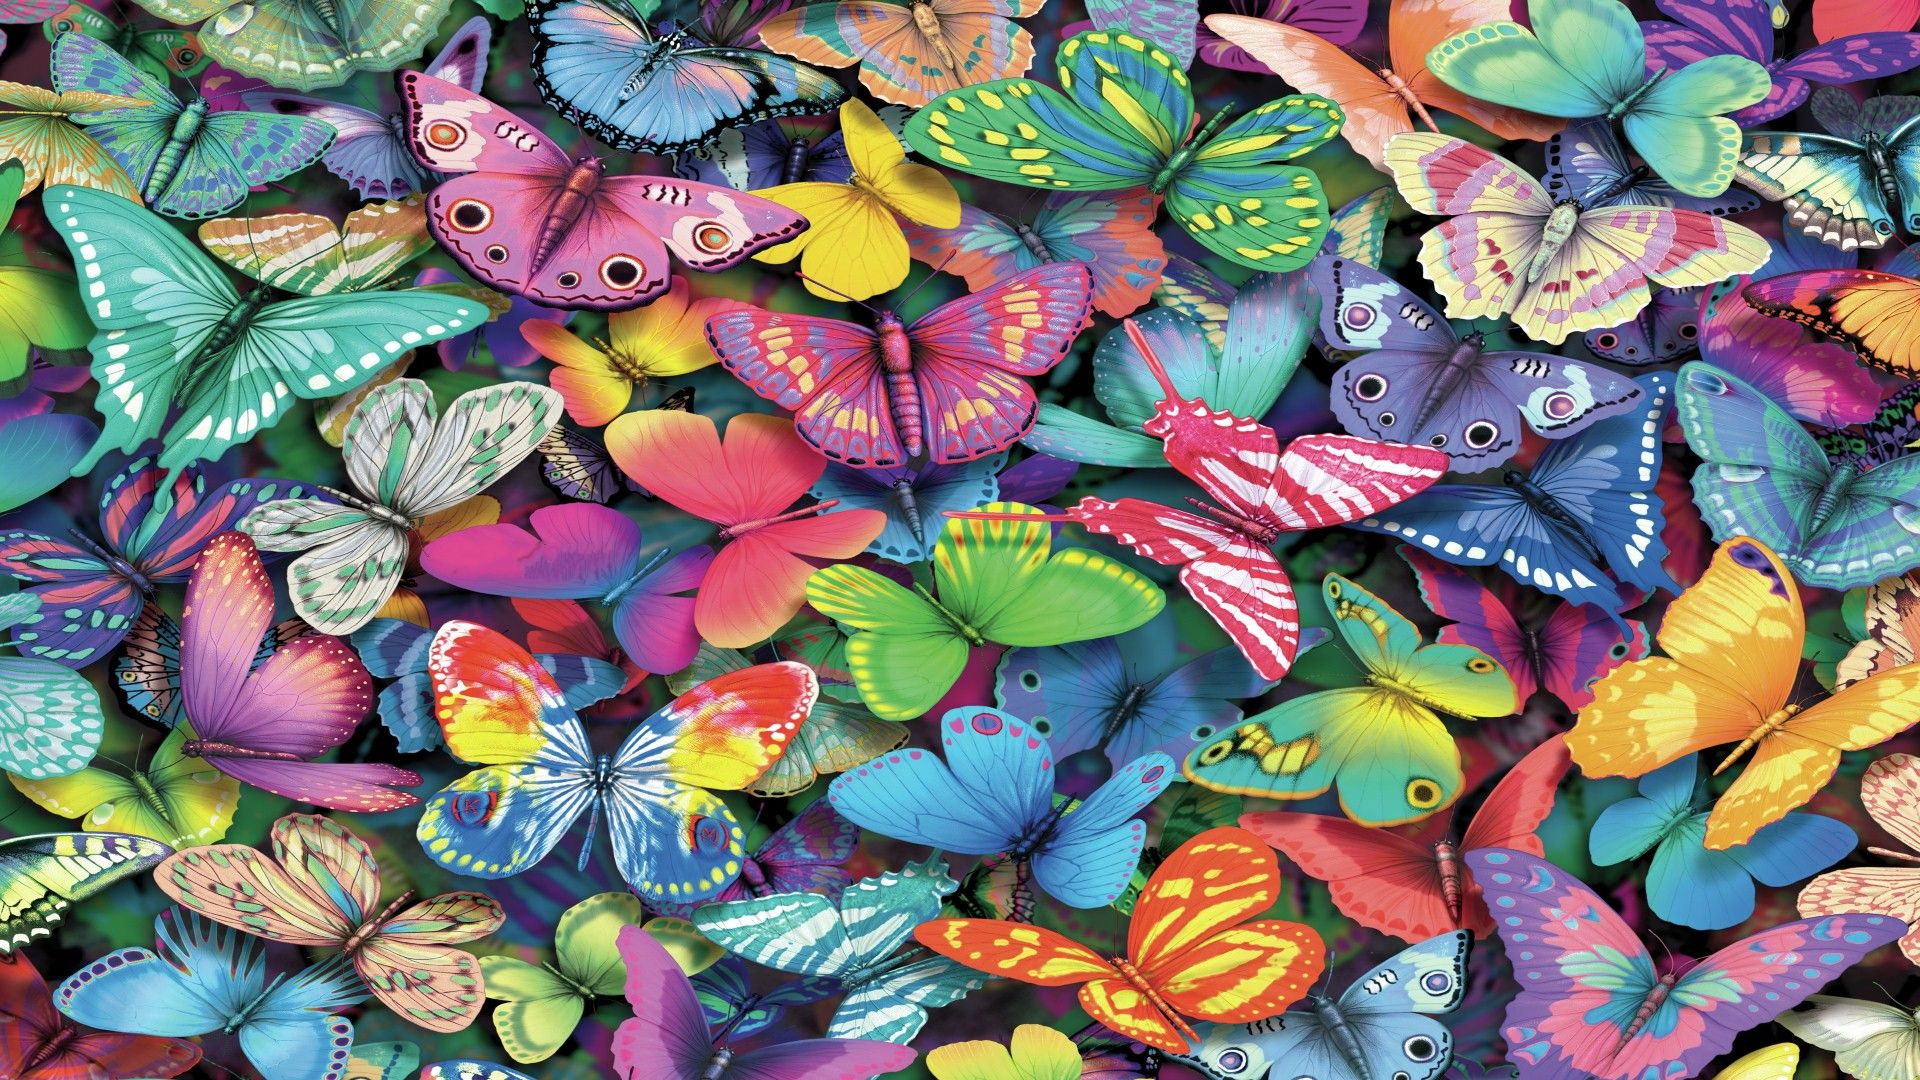 Free Butterfly Desktop Backgrounds Posted By Ethan Thompson